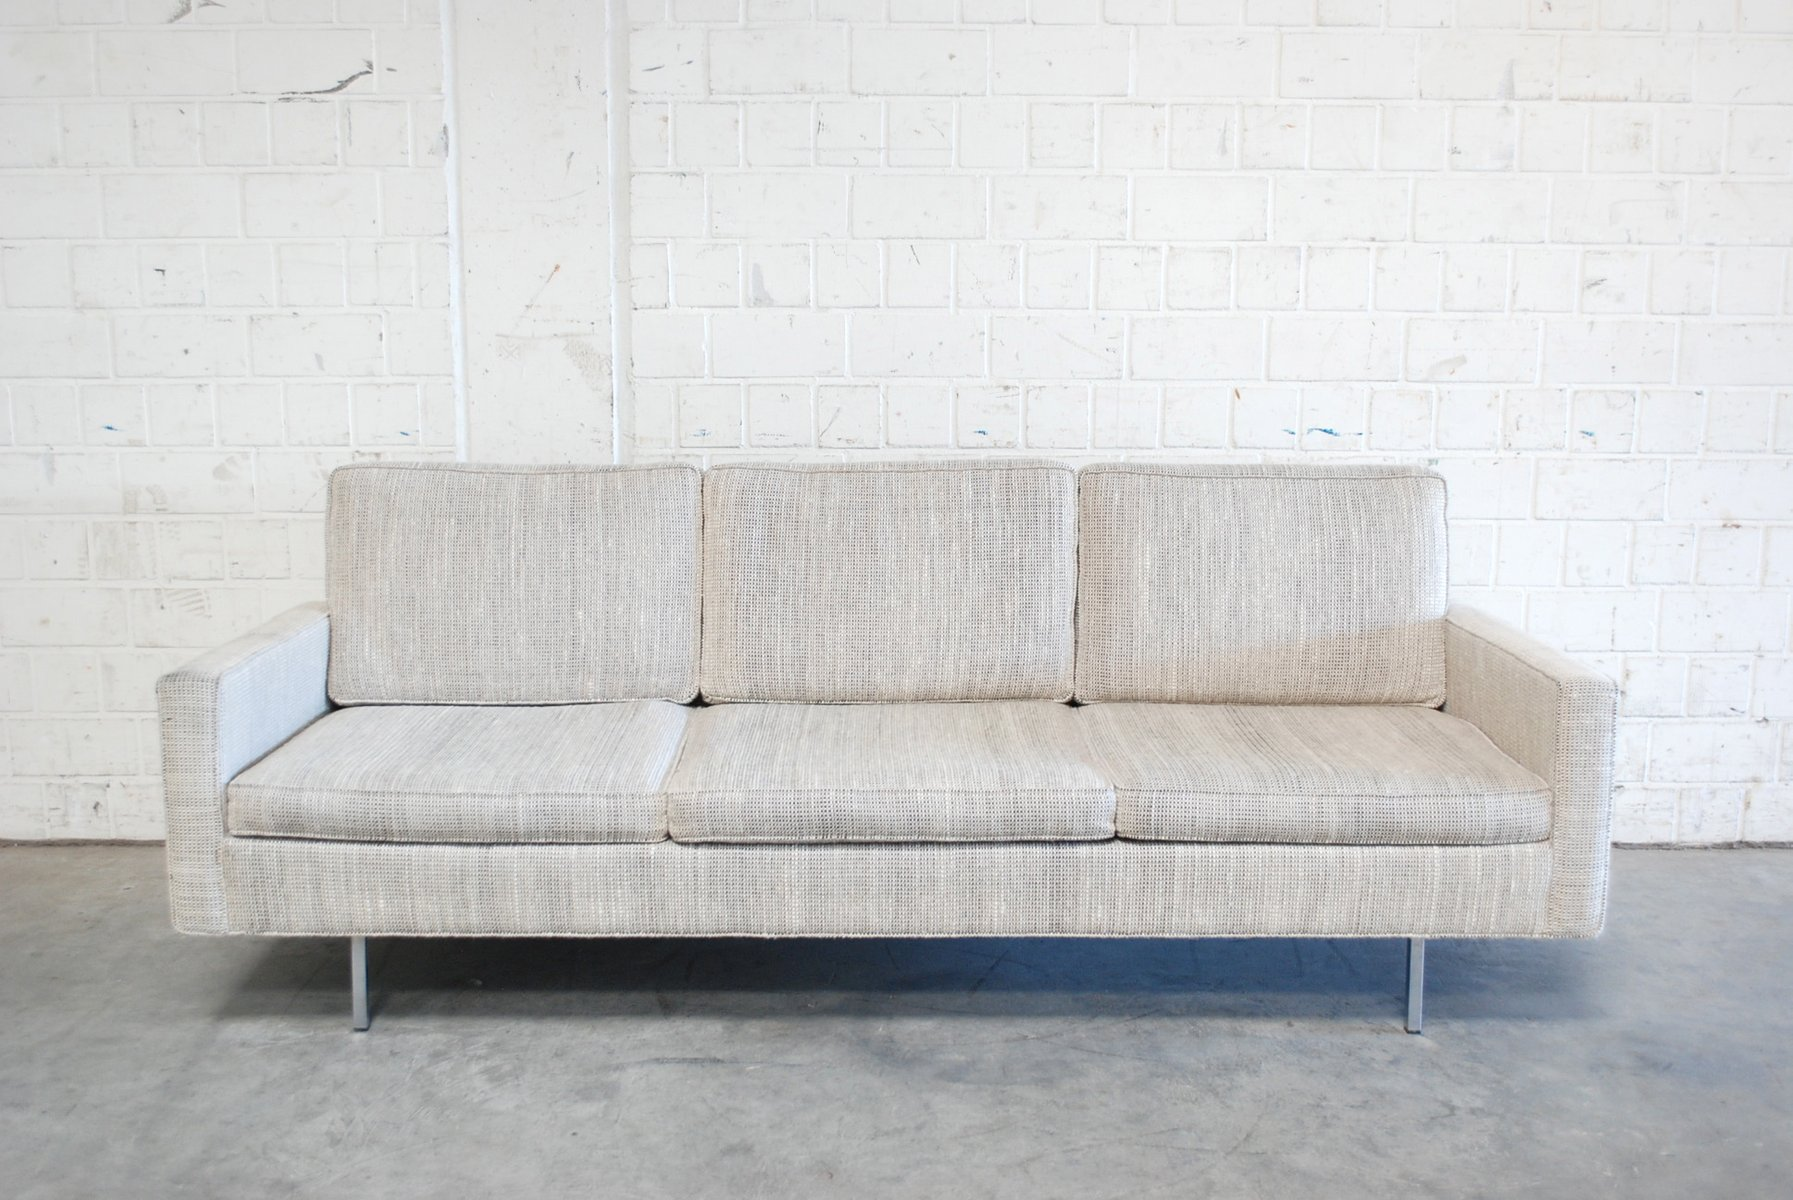 Model 25 BC Sofa and Chair by Florence Knoll for Knoll